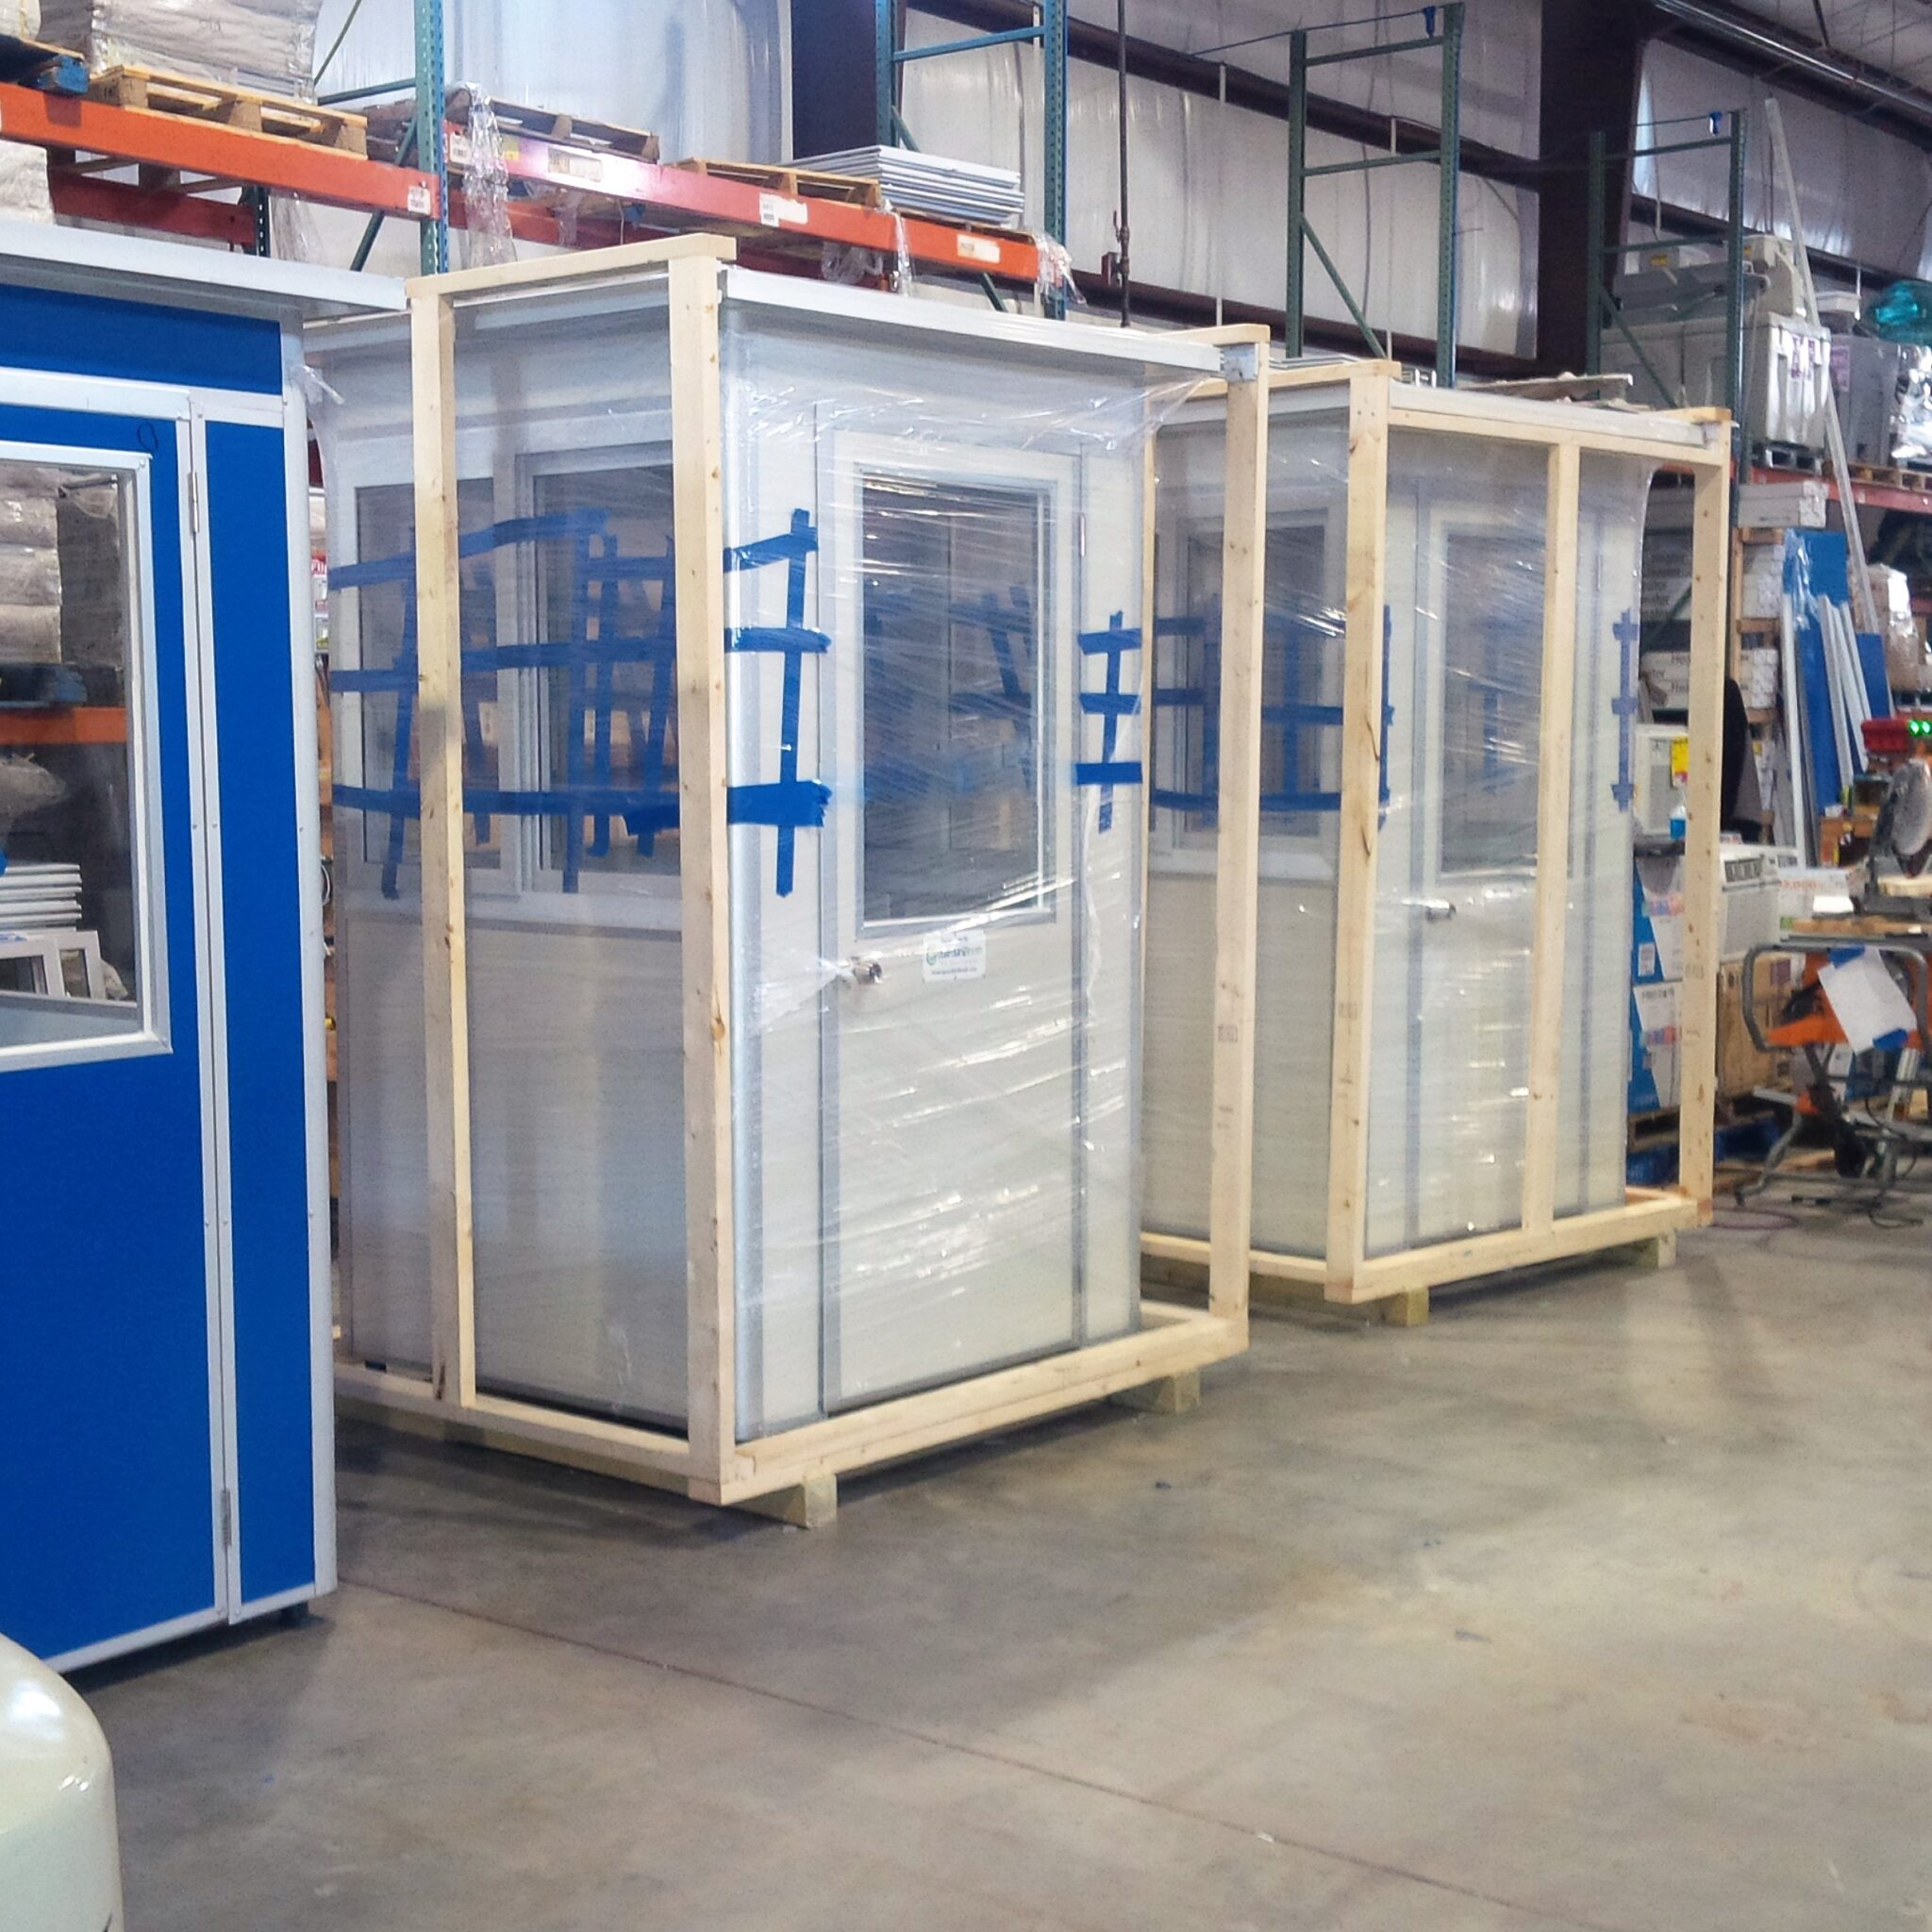 4x4 Security Guard Booths ready for Delivery in Guntersville, AL with Custom Exterior Color, Swing Door, and Sliding Windows